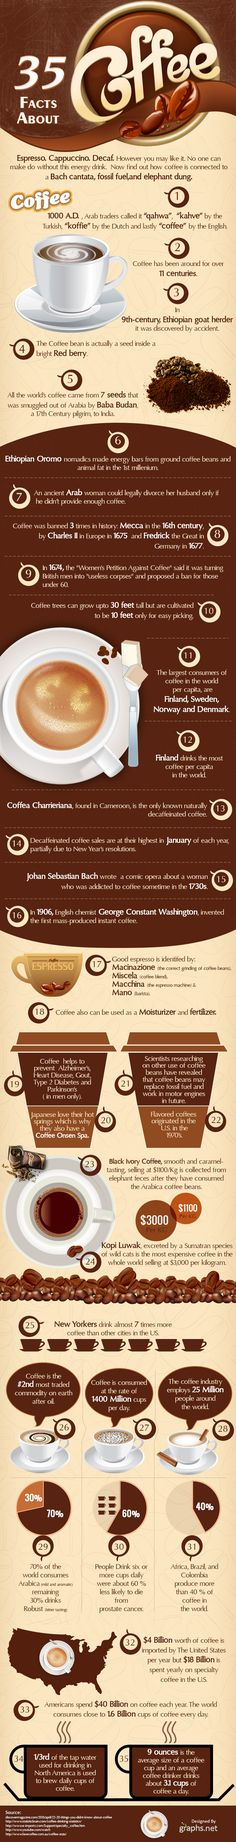 35 Facts About Coffee. Fascinating Facts. #coffee #facts